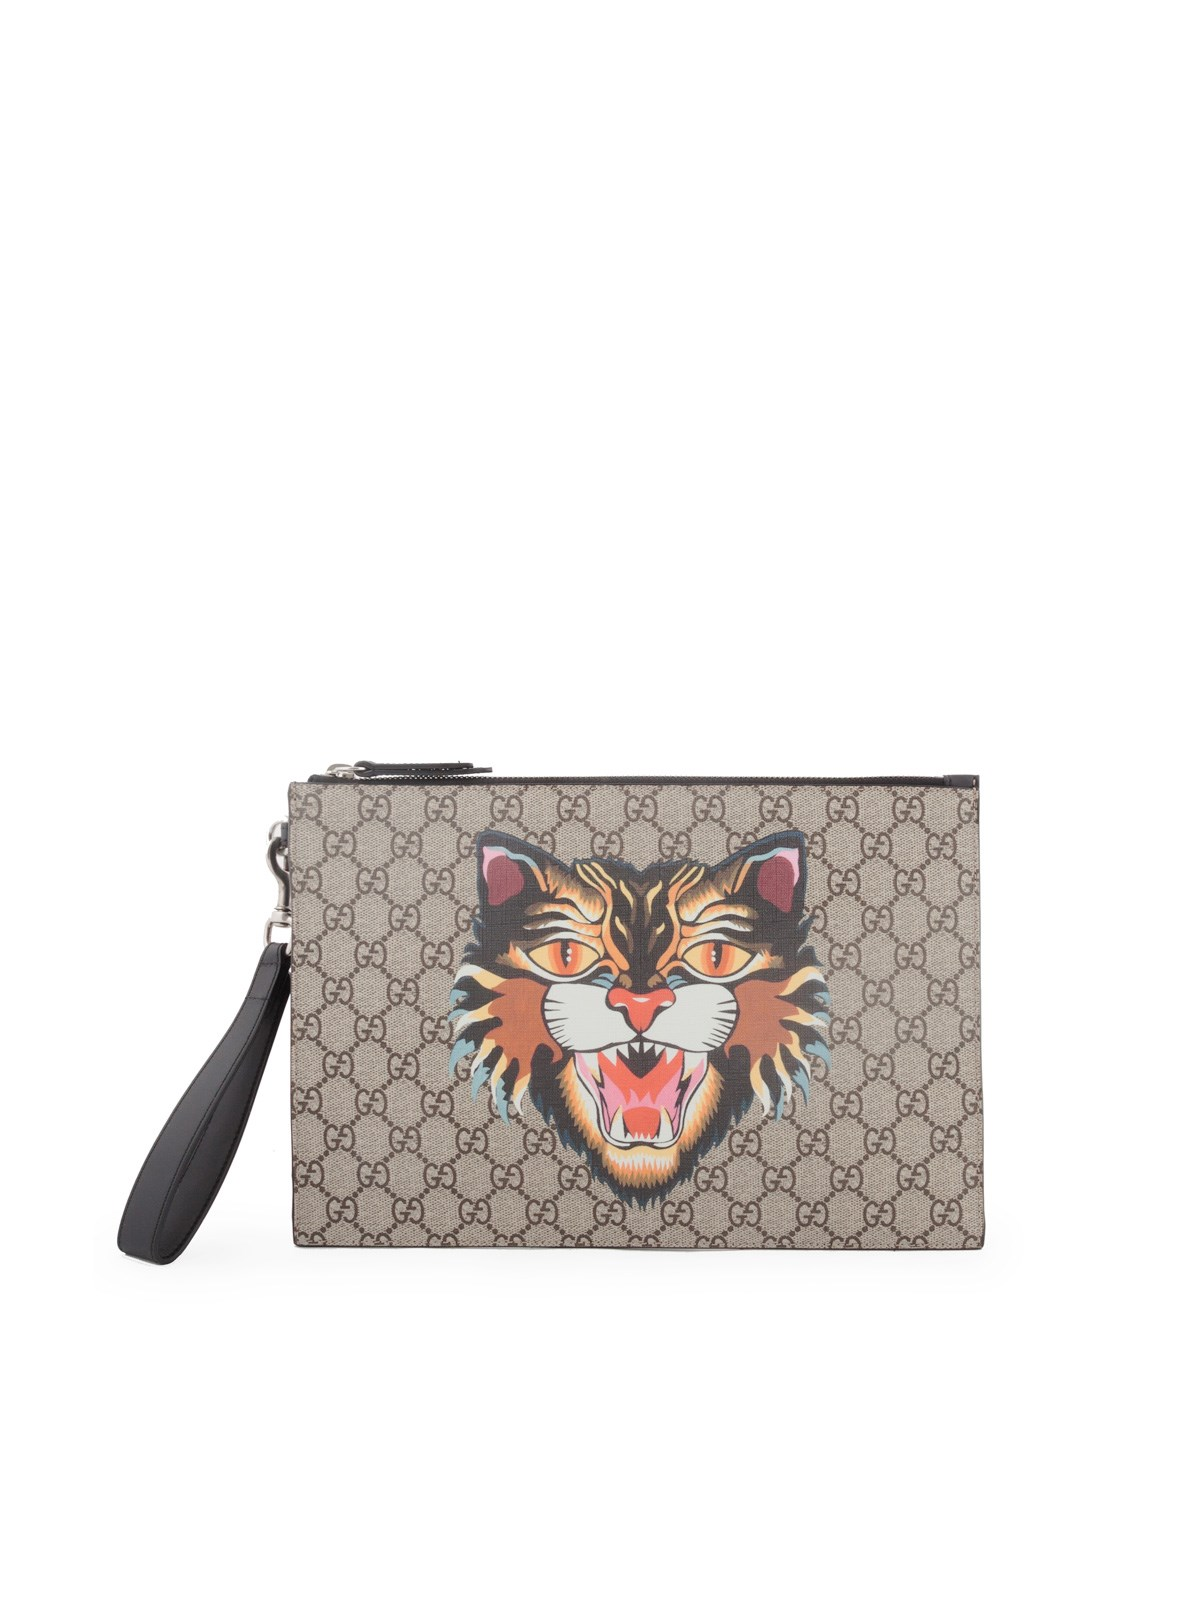 5914d4cf83f9 gucci GG SUPREME CLUTCH ANGRY CAT PRINT available on montiboutique ...